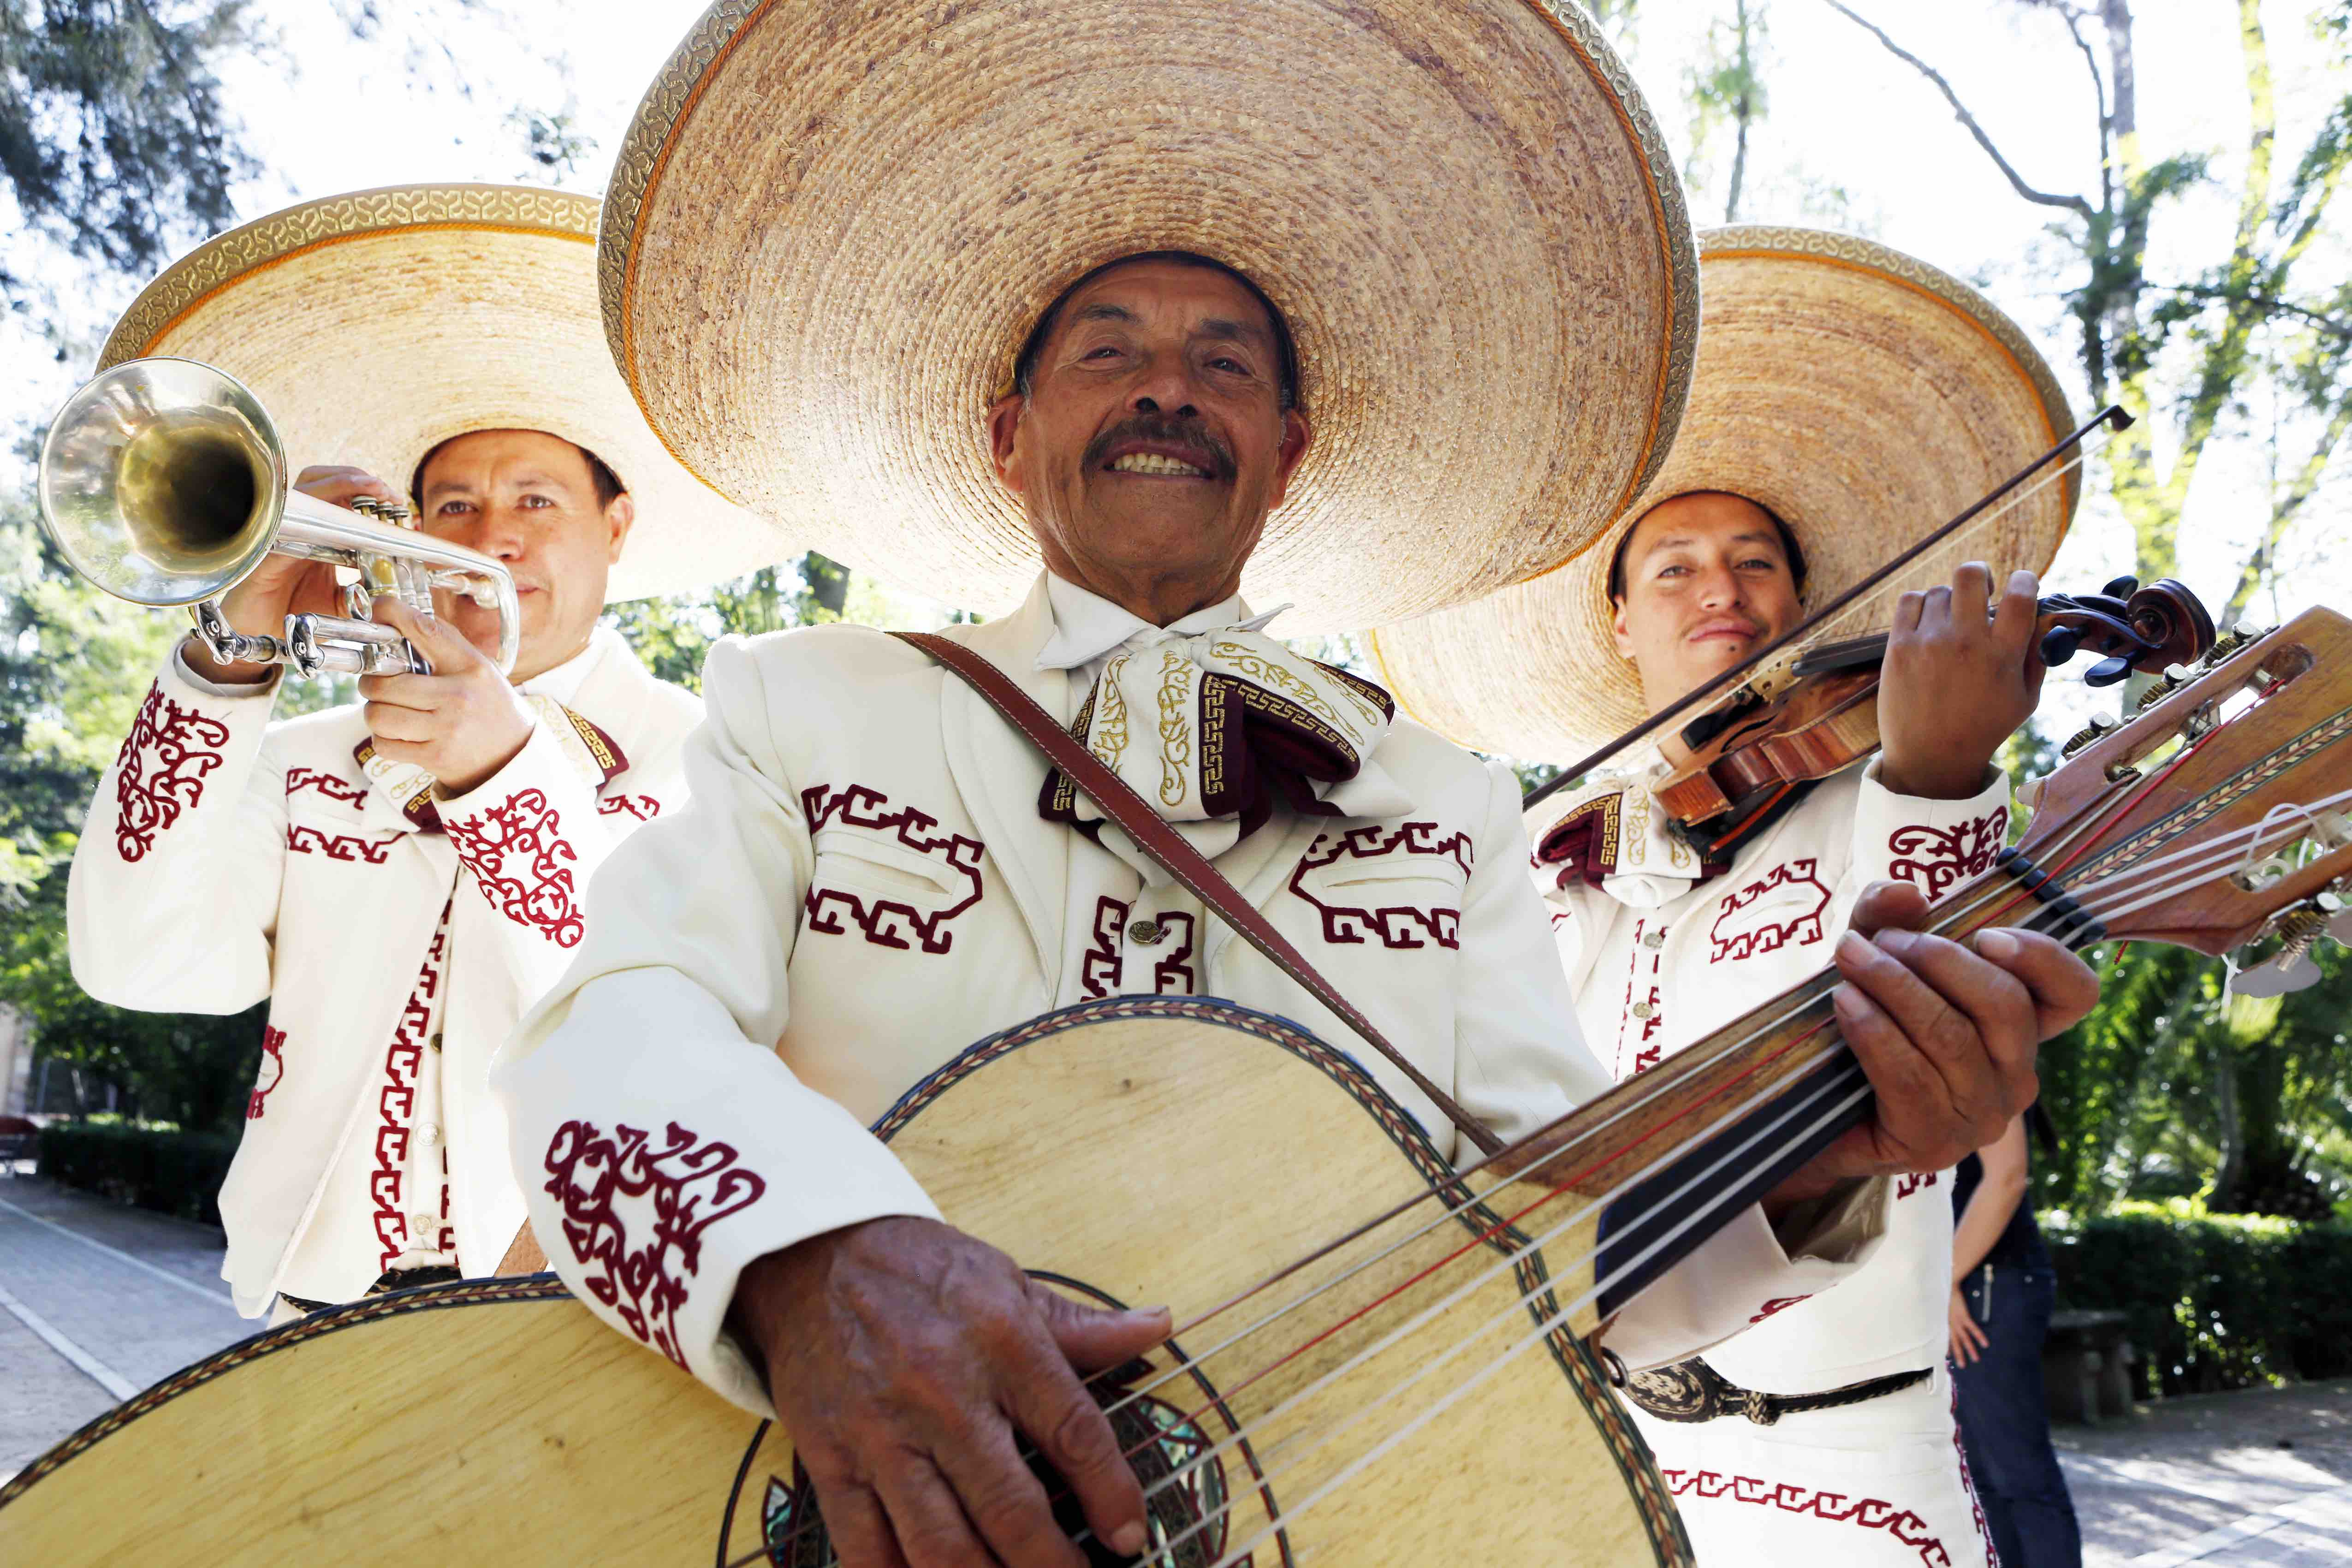 After Racist Lawyer Goes Viral, the Internet Is Sending Mariachis to His New York Office